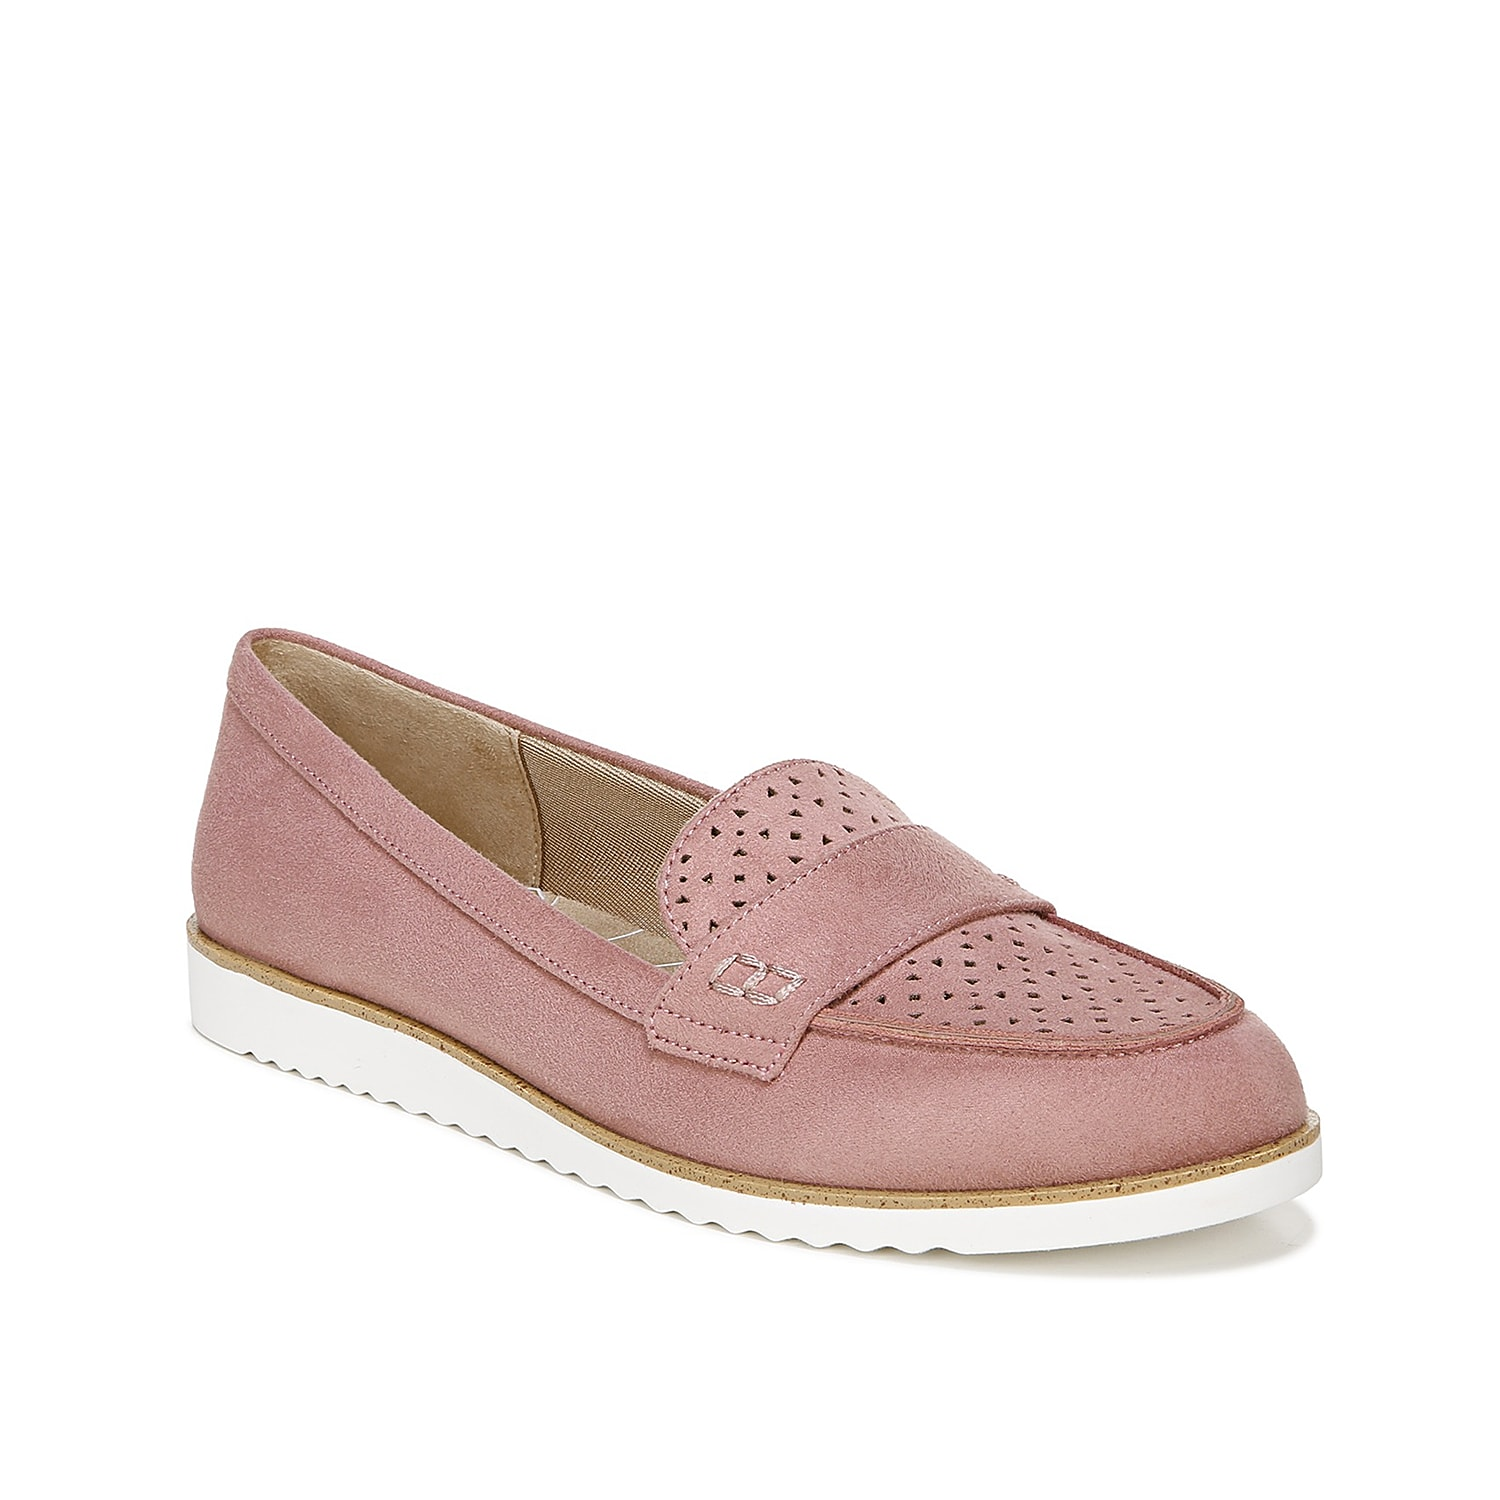 Step forward with ease when wearing the Zaza loafer from LifeStride. This flat is fashioned with laser-cut accents and a layer of Velocity with Memory Foam that hugs your foot!